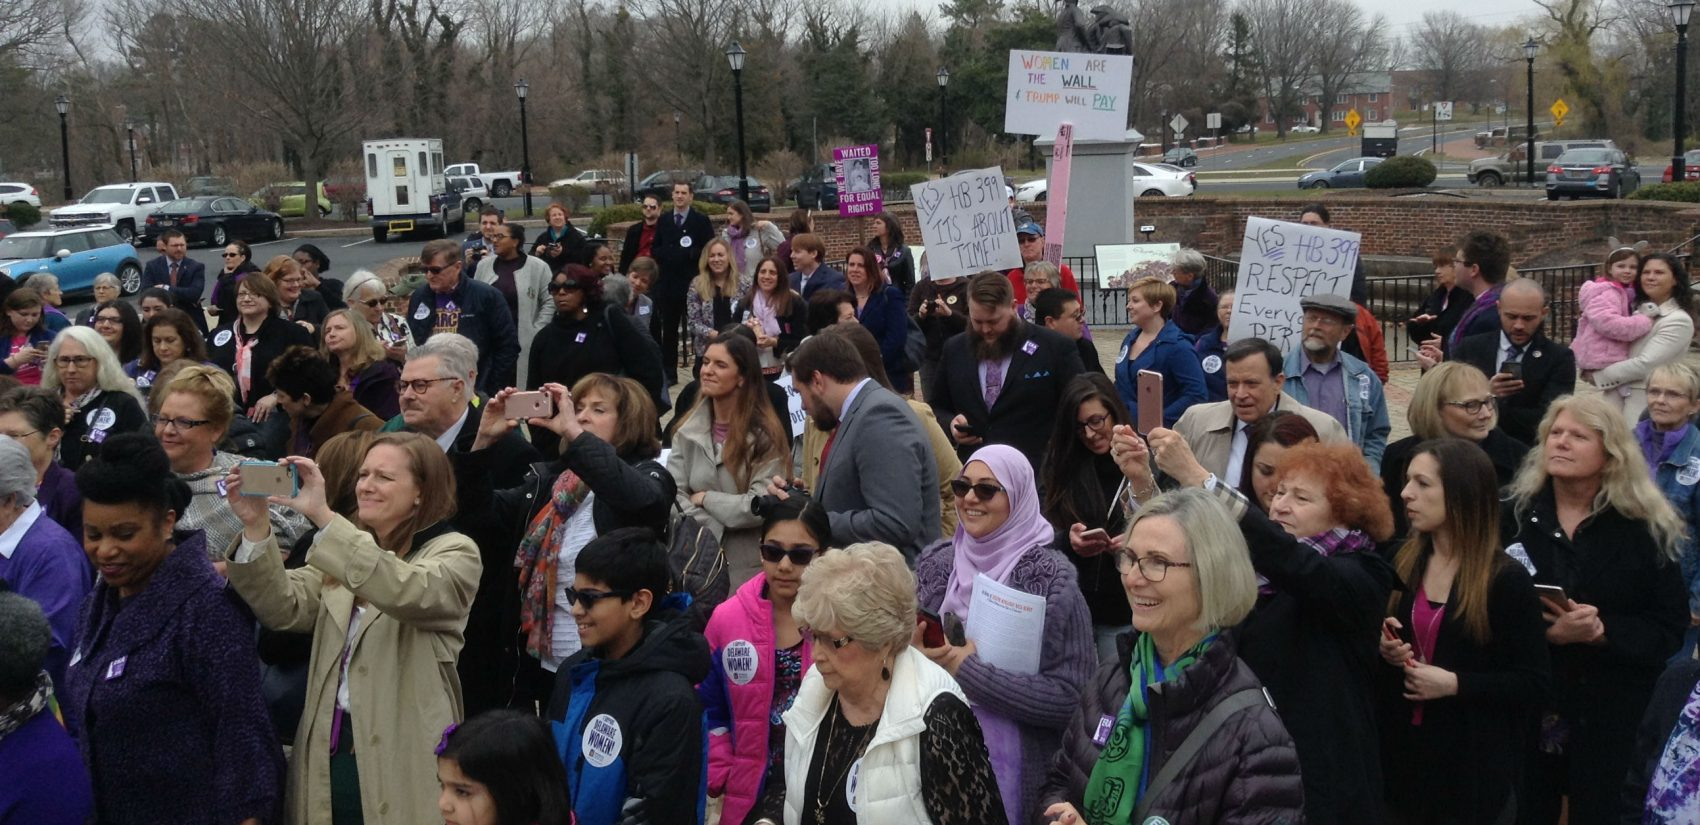 A big crowd shows support for the Equal Rights Amendment outside Legislative Hall in Dover. (Zoe Read/WHYY)